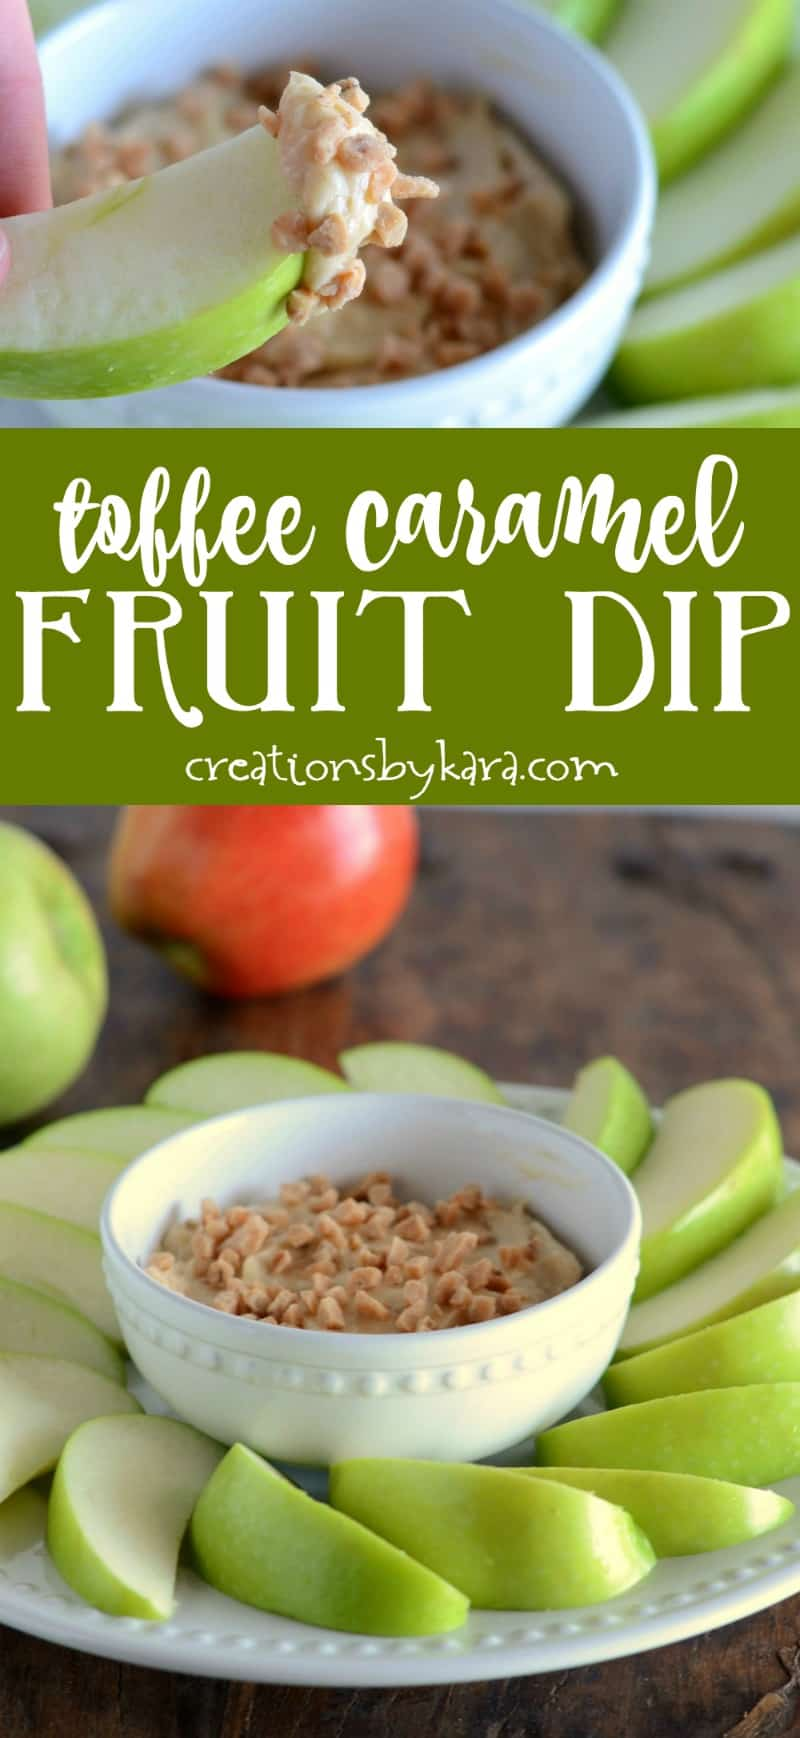 Toffee Caramel Fruit Dip - totally addicting, everyone loves this fruit dip! We love it with apples.